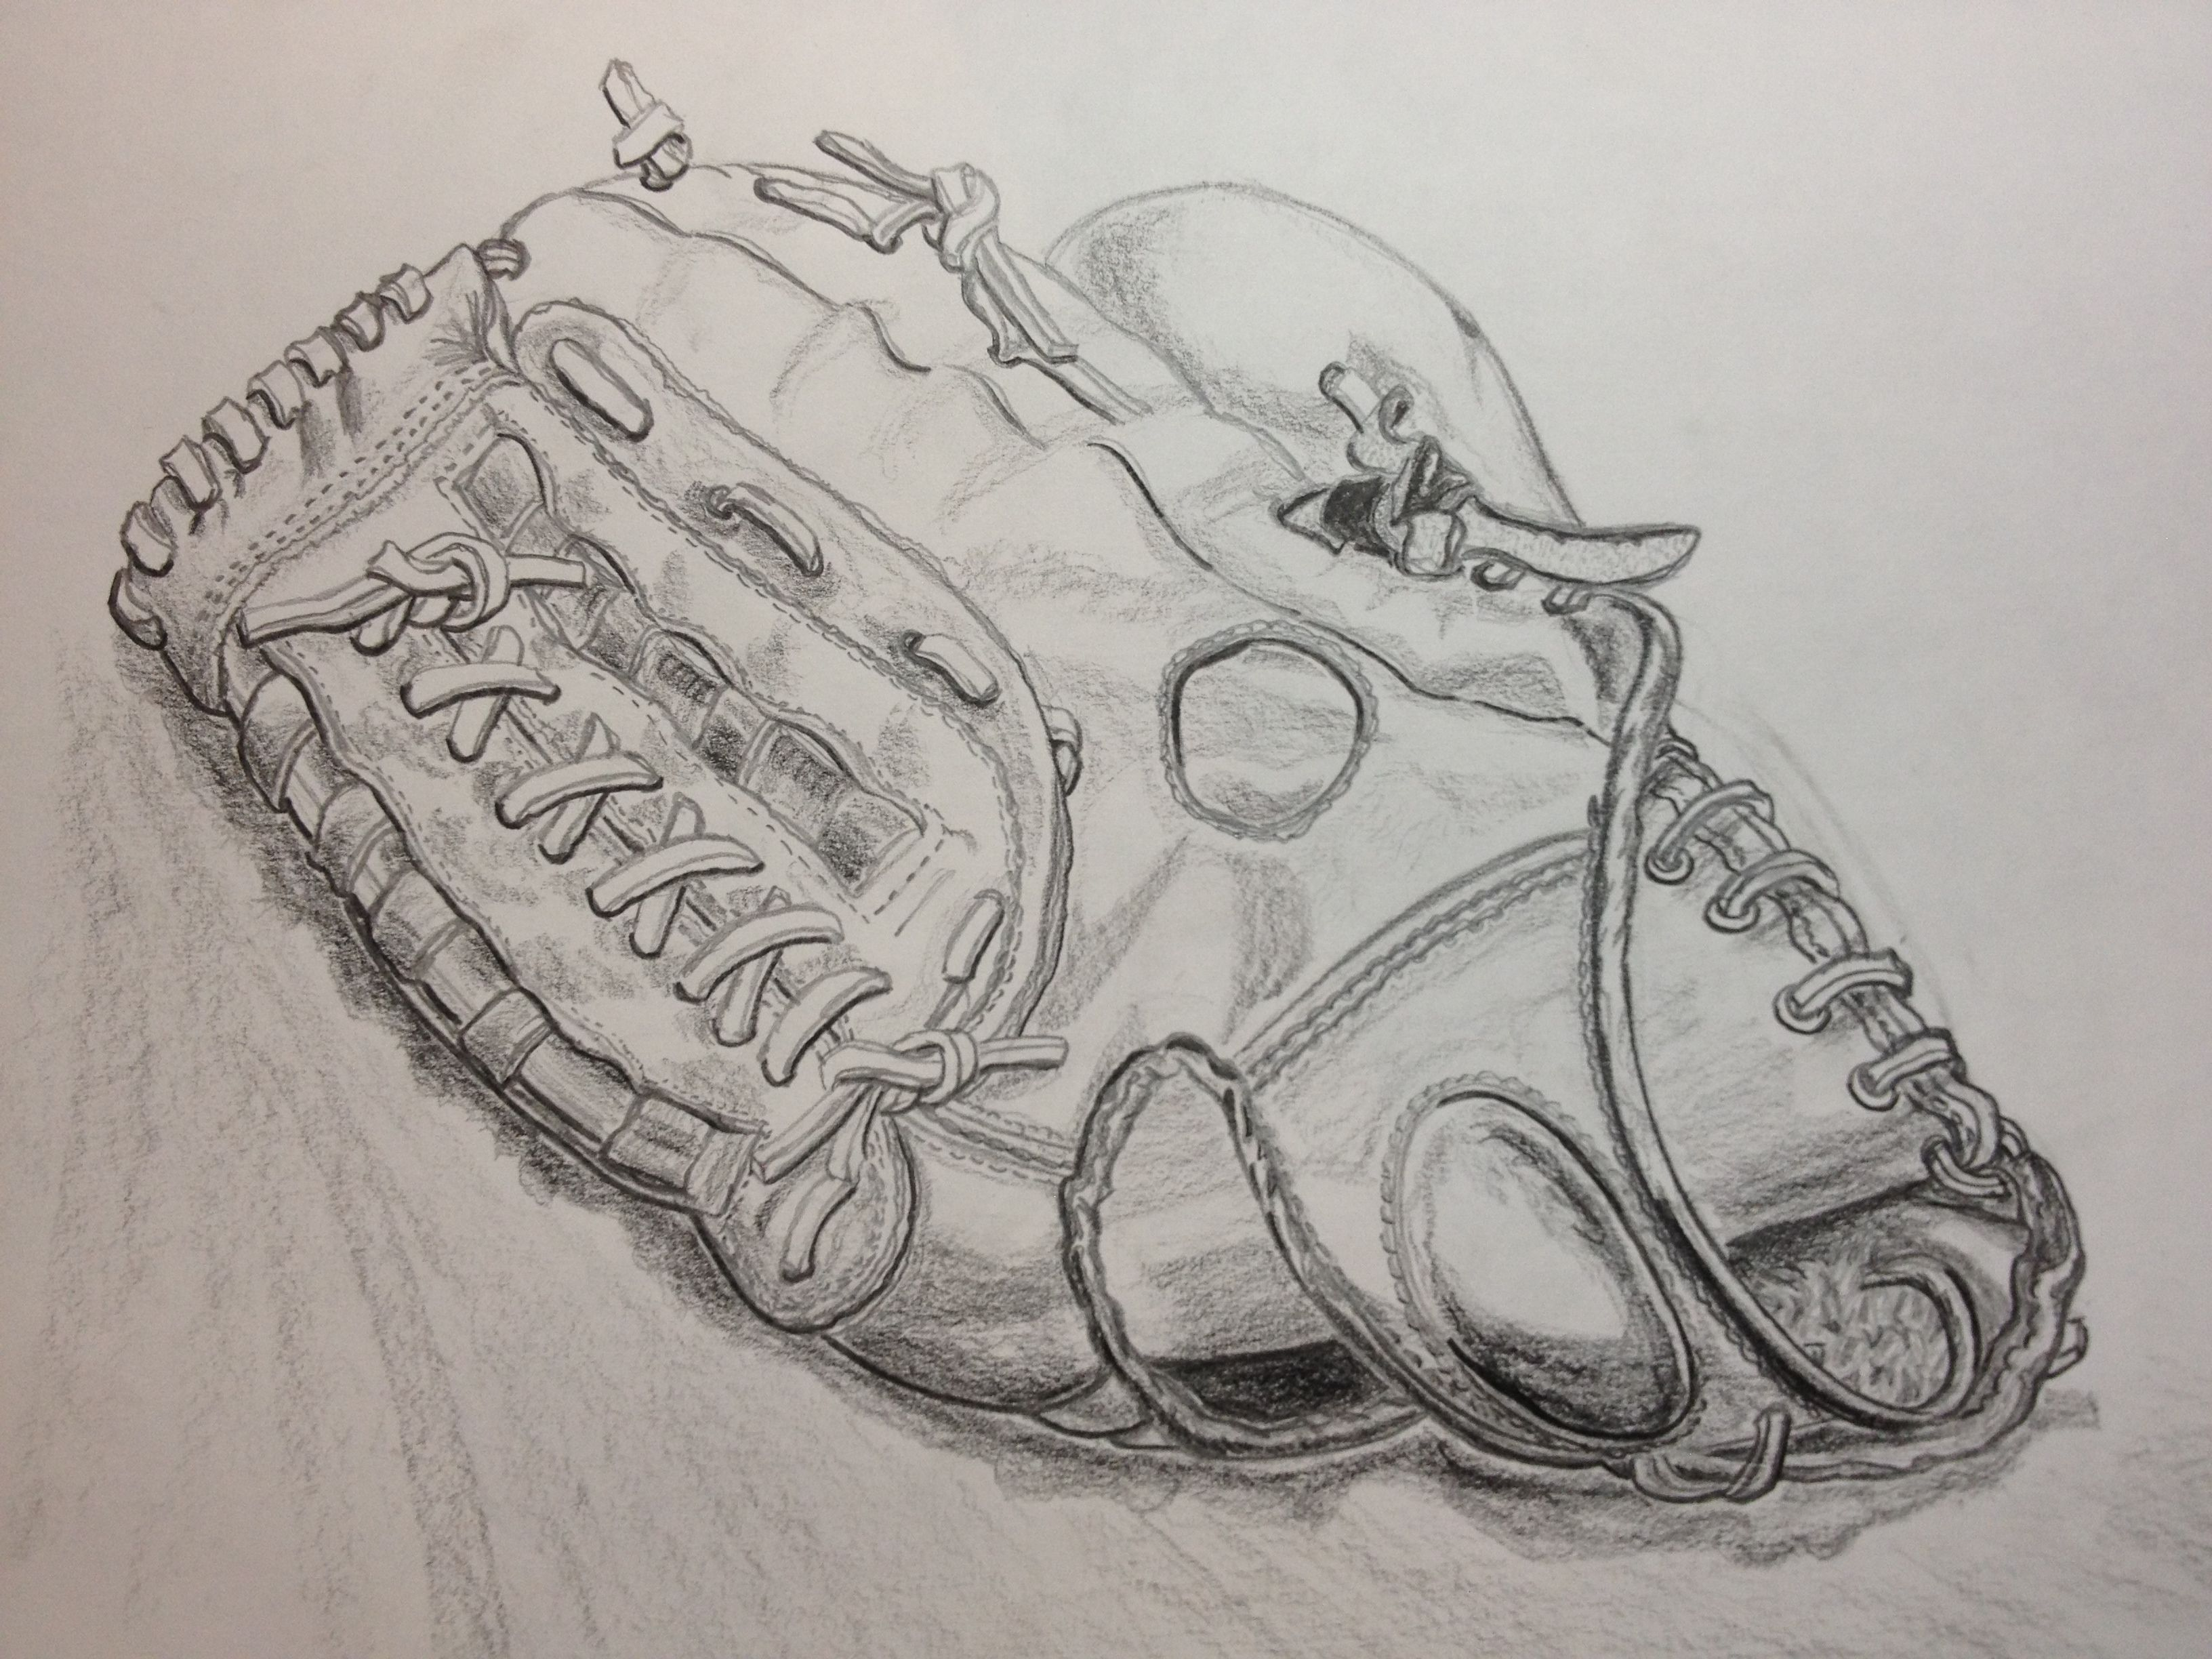 Pencil sketch of my baseball glove homework from design school by rodger barnes 1999